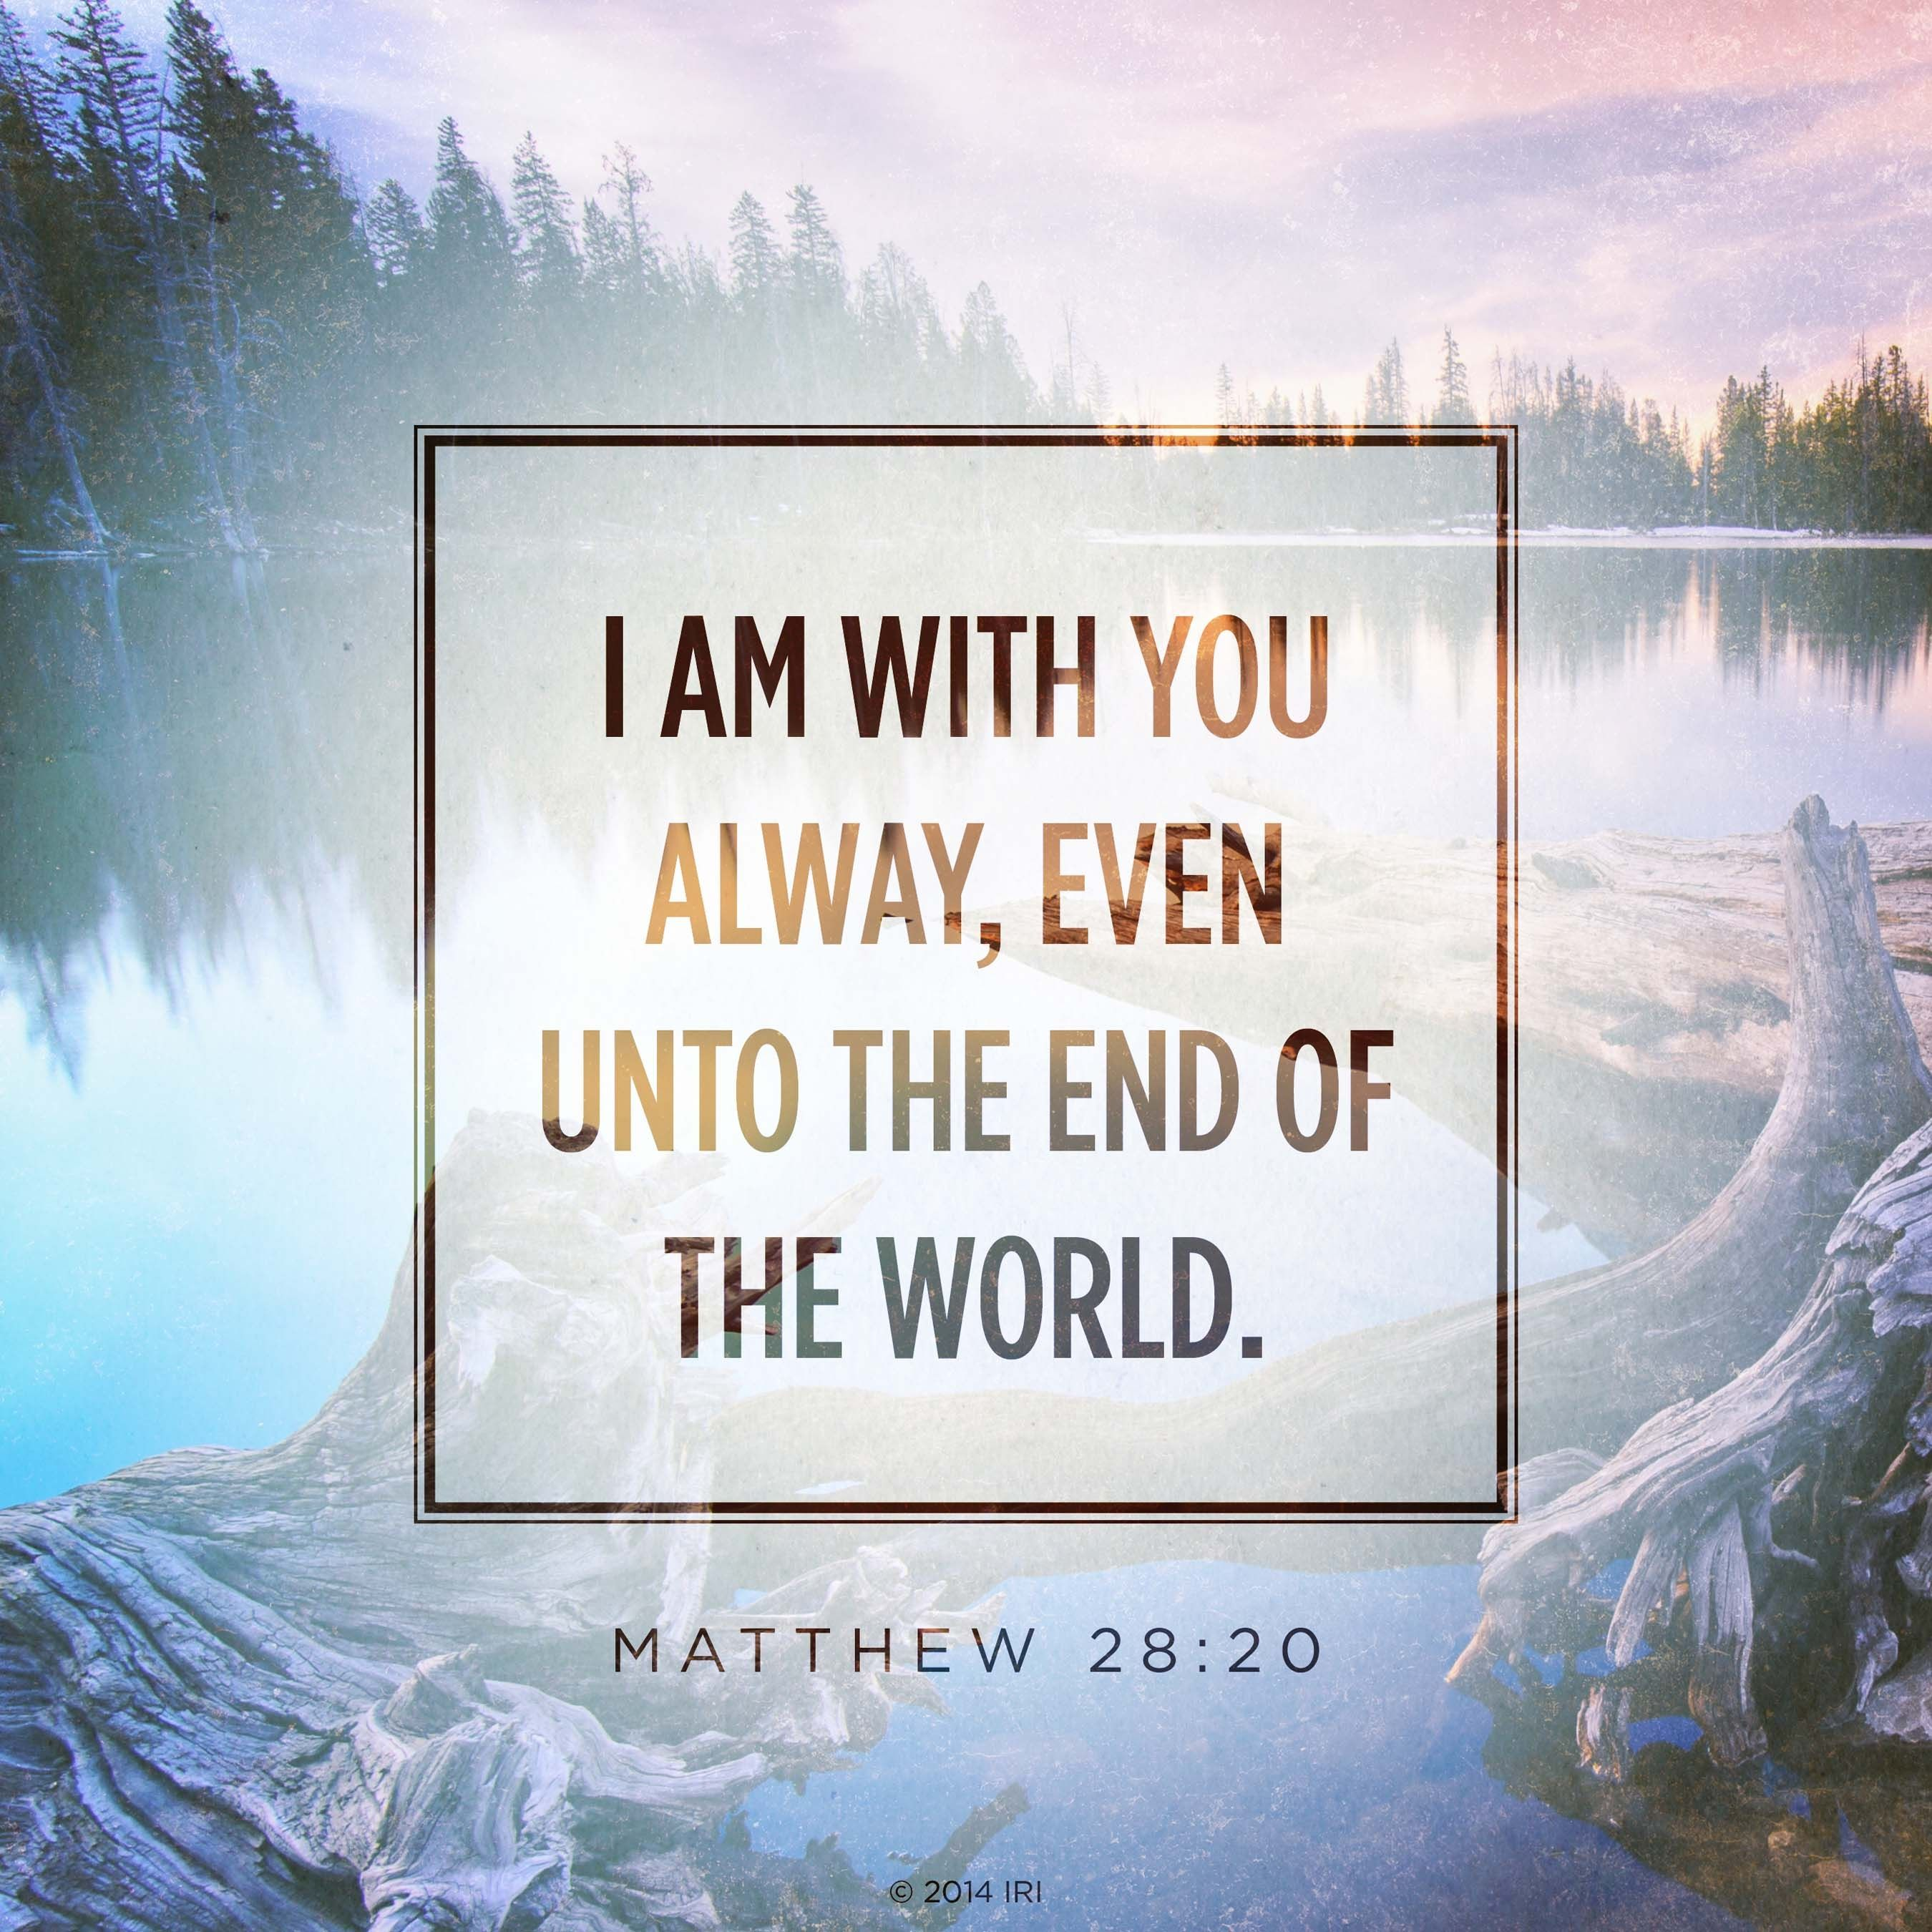 """""""I am with you alway, even unto the end of the world.""""—Matthew 28:20"""